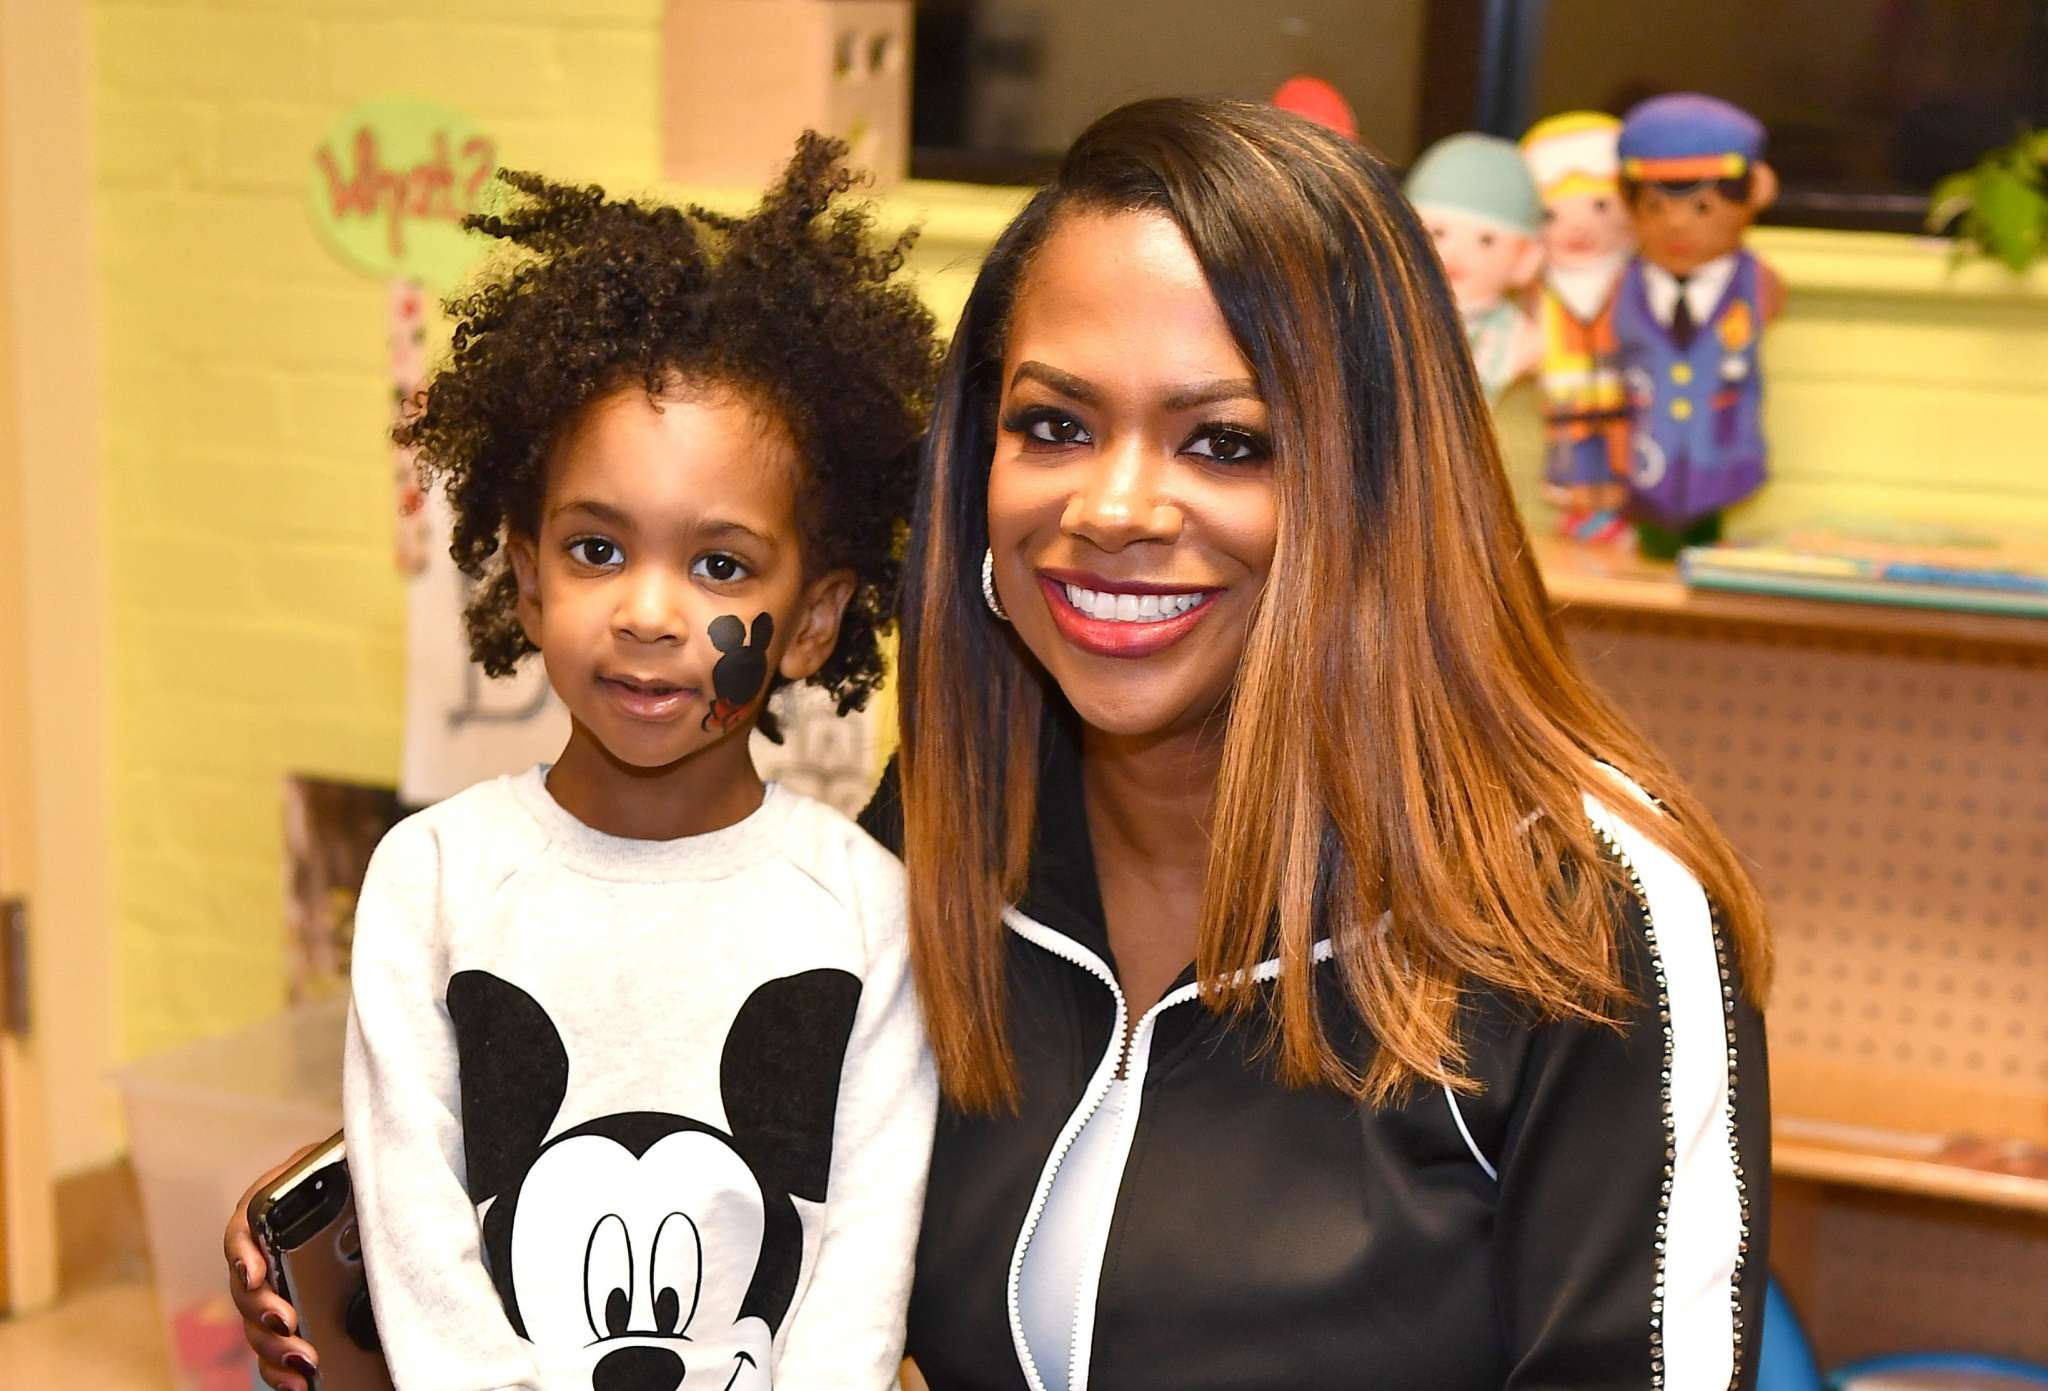 Kandi Burruss And Todd Tucker Have The Most Talented Son - Check Out Ace Wells Tucker's Latest Achievement In This Video